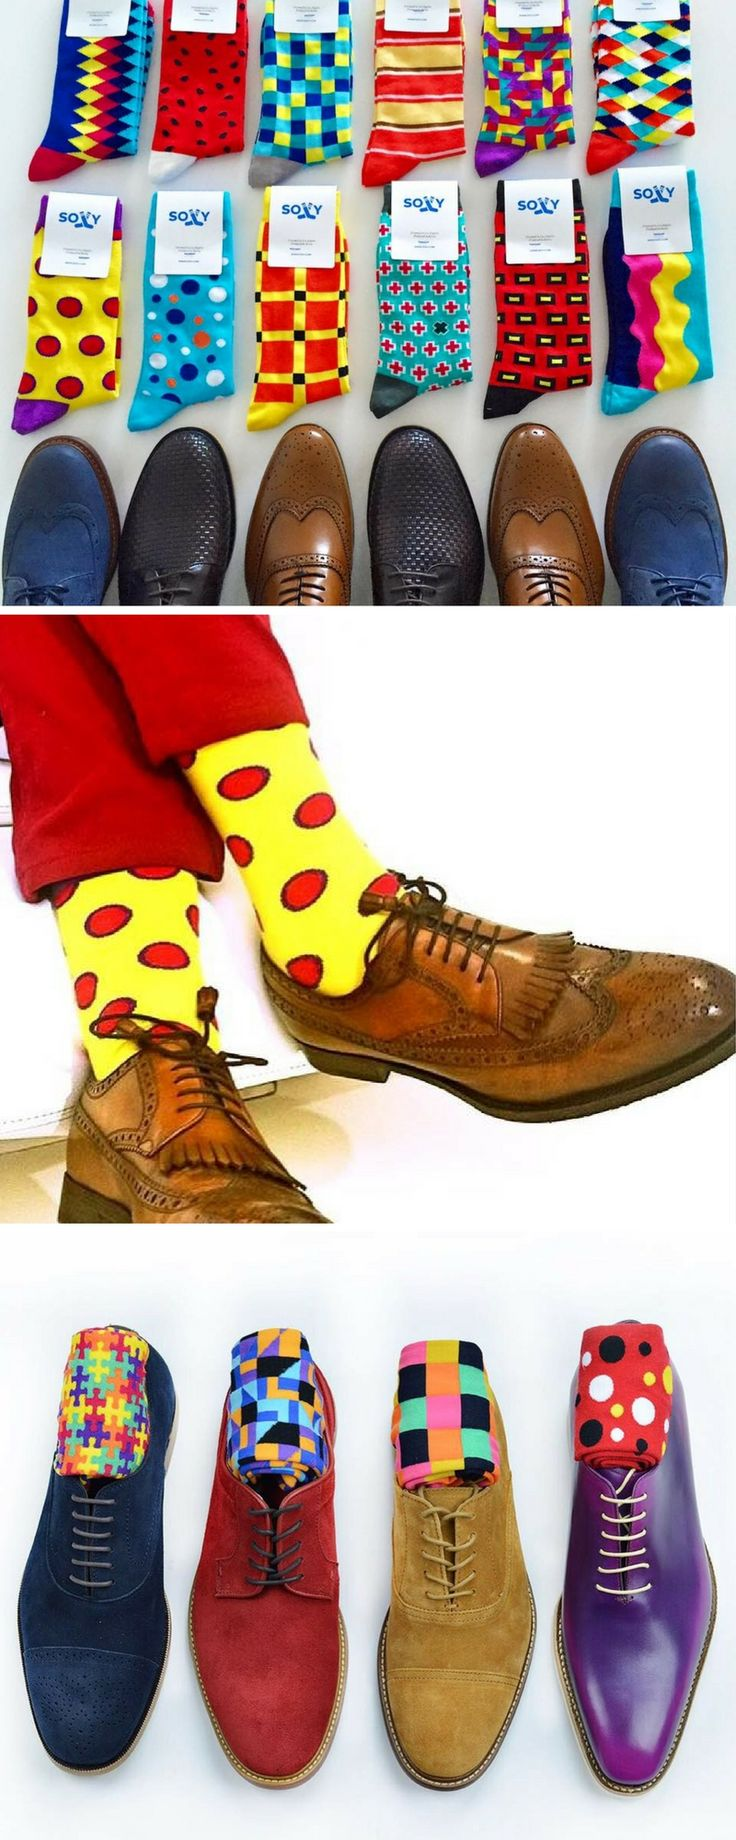 It's always better to have options. Soxy.com designs the coolest, most fun dress socks.